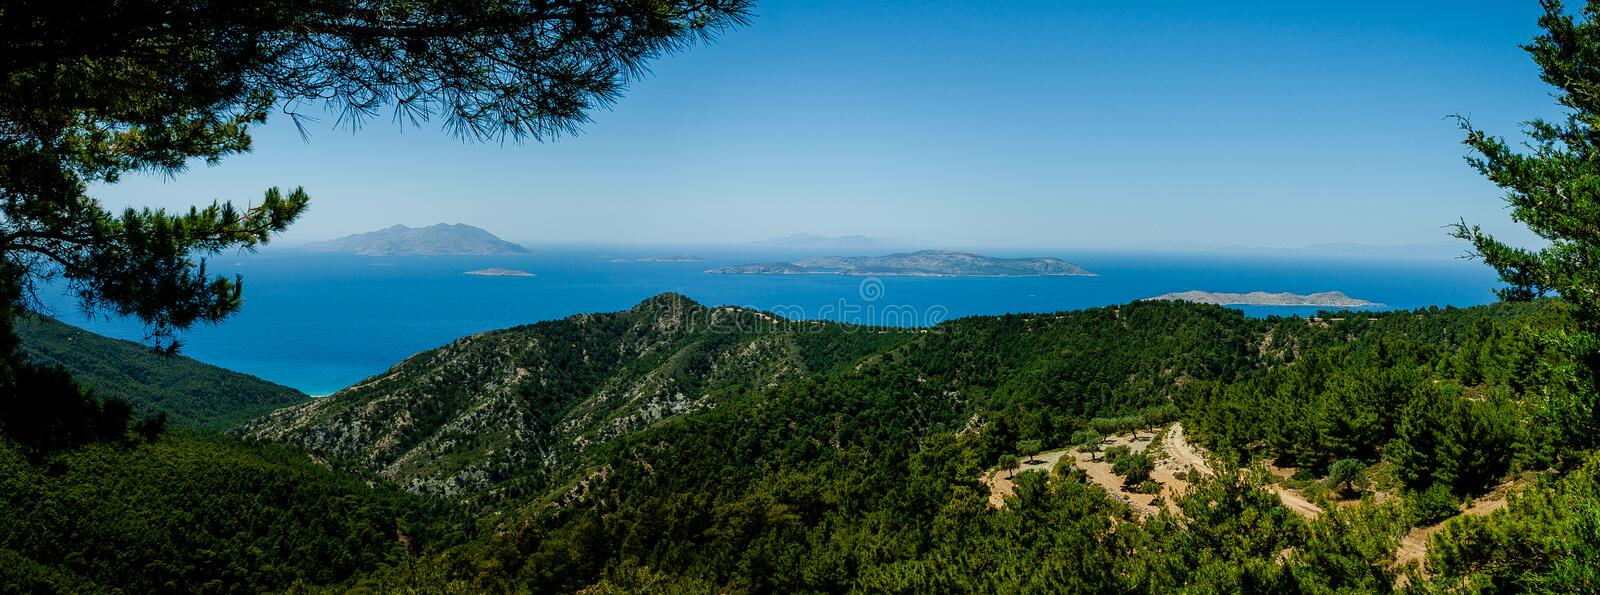 Islands view panorama royalty free stock image